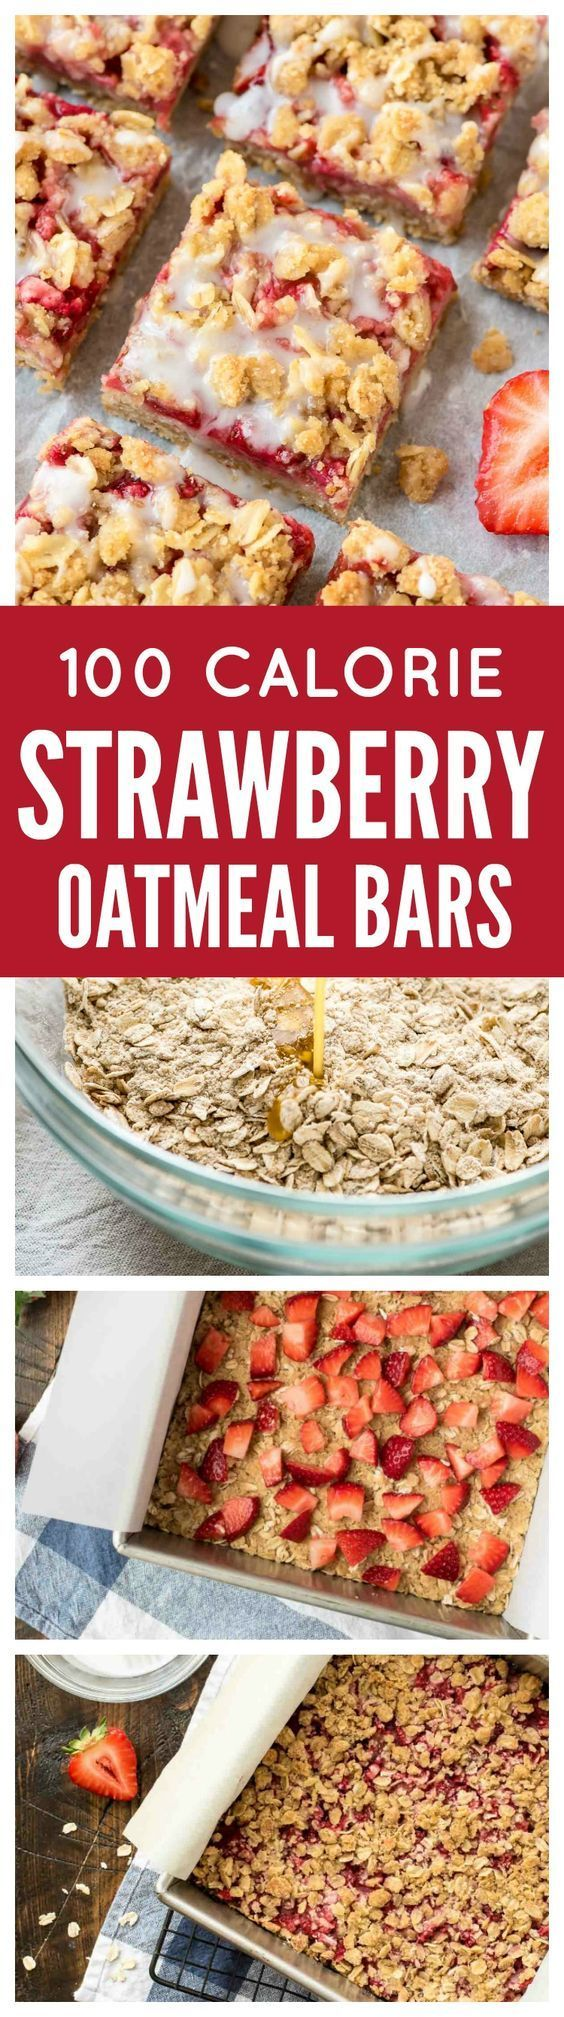 These buttery Strawberry Oatmeal Bars are only 100 CALORIES EACH!! With a buttery crust sweet strawberry filling and delicious crumb topping they make wonderful dessert bars to take to a party or potluck but are healthy enough for a snack. So easy even kids can make them! @wellplatedThese buttery Strawberry Oatmeal Bars are only 100 CALORIES EACH!! With a buttery crust sweet strawberry filling and delicious crumb topping they make wonderful dessert bars to take to a party or potluck but are…